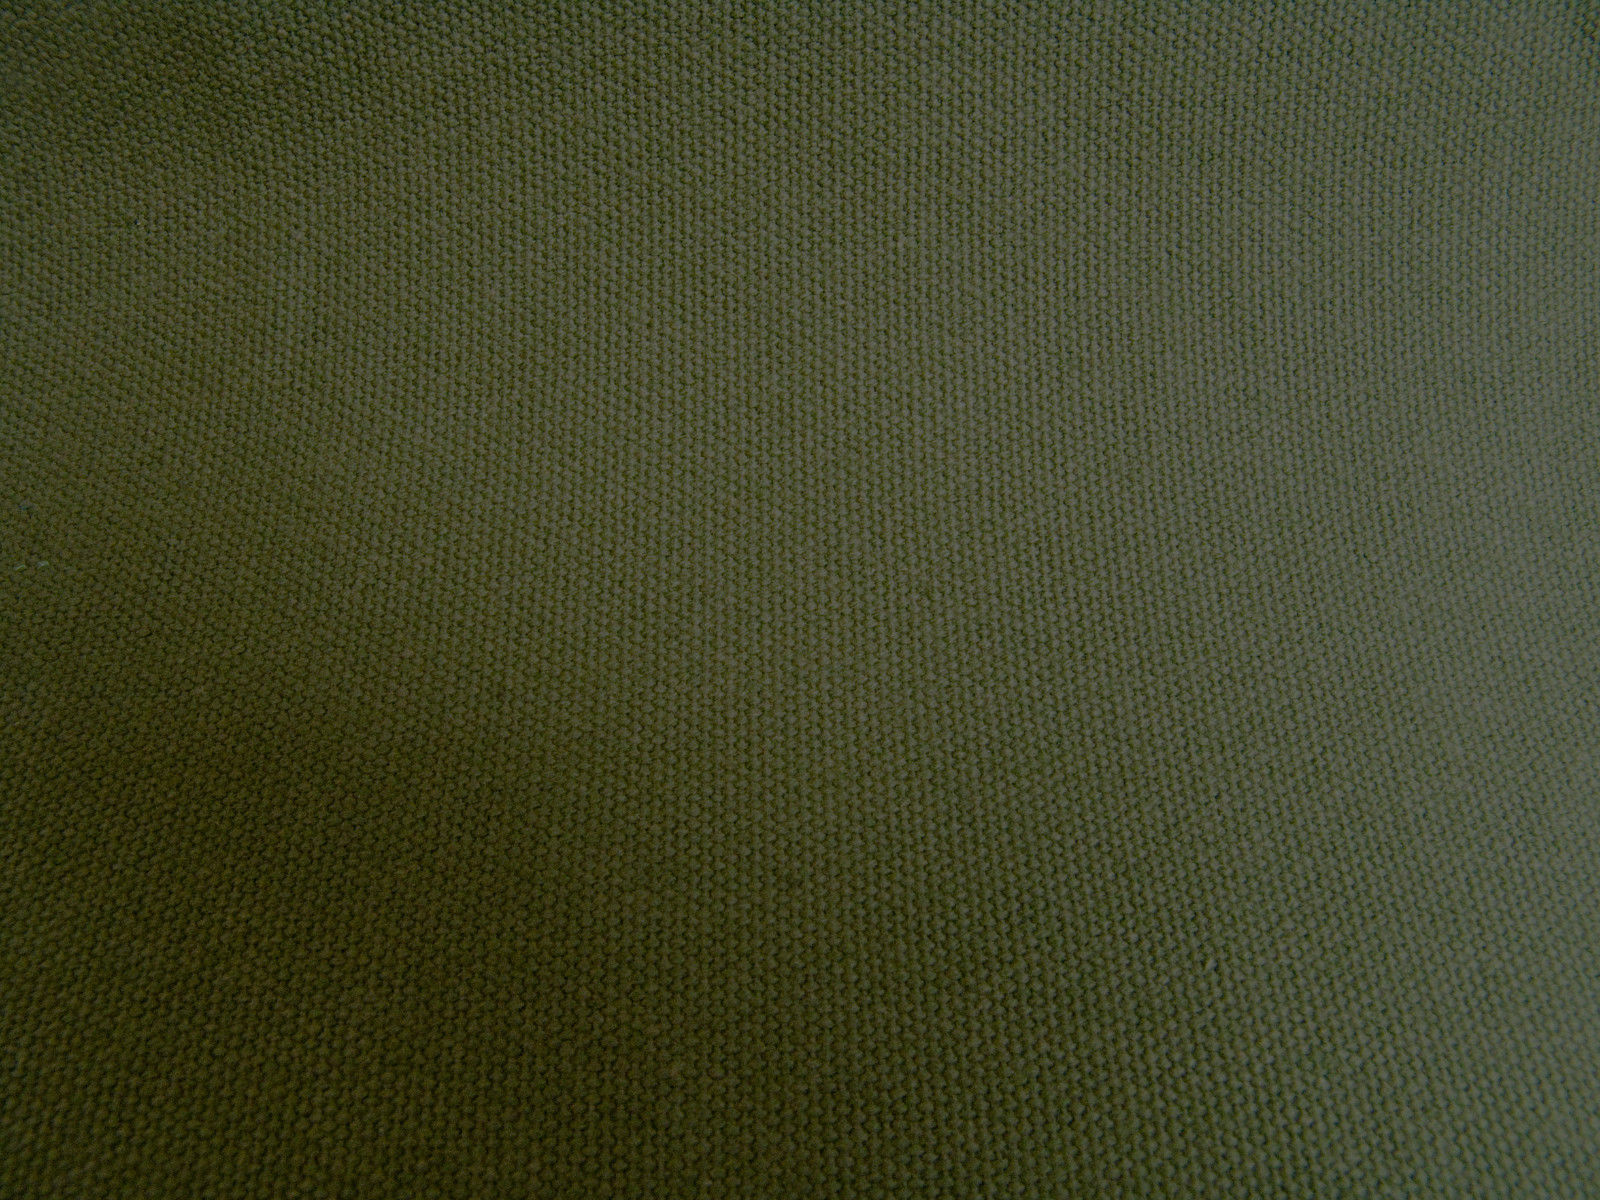 """Olive Drab Cotton Duck, #8 Chair Duck, 58½"""" Wide Sold By The Yard - 36"""" image 2"""